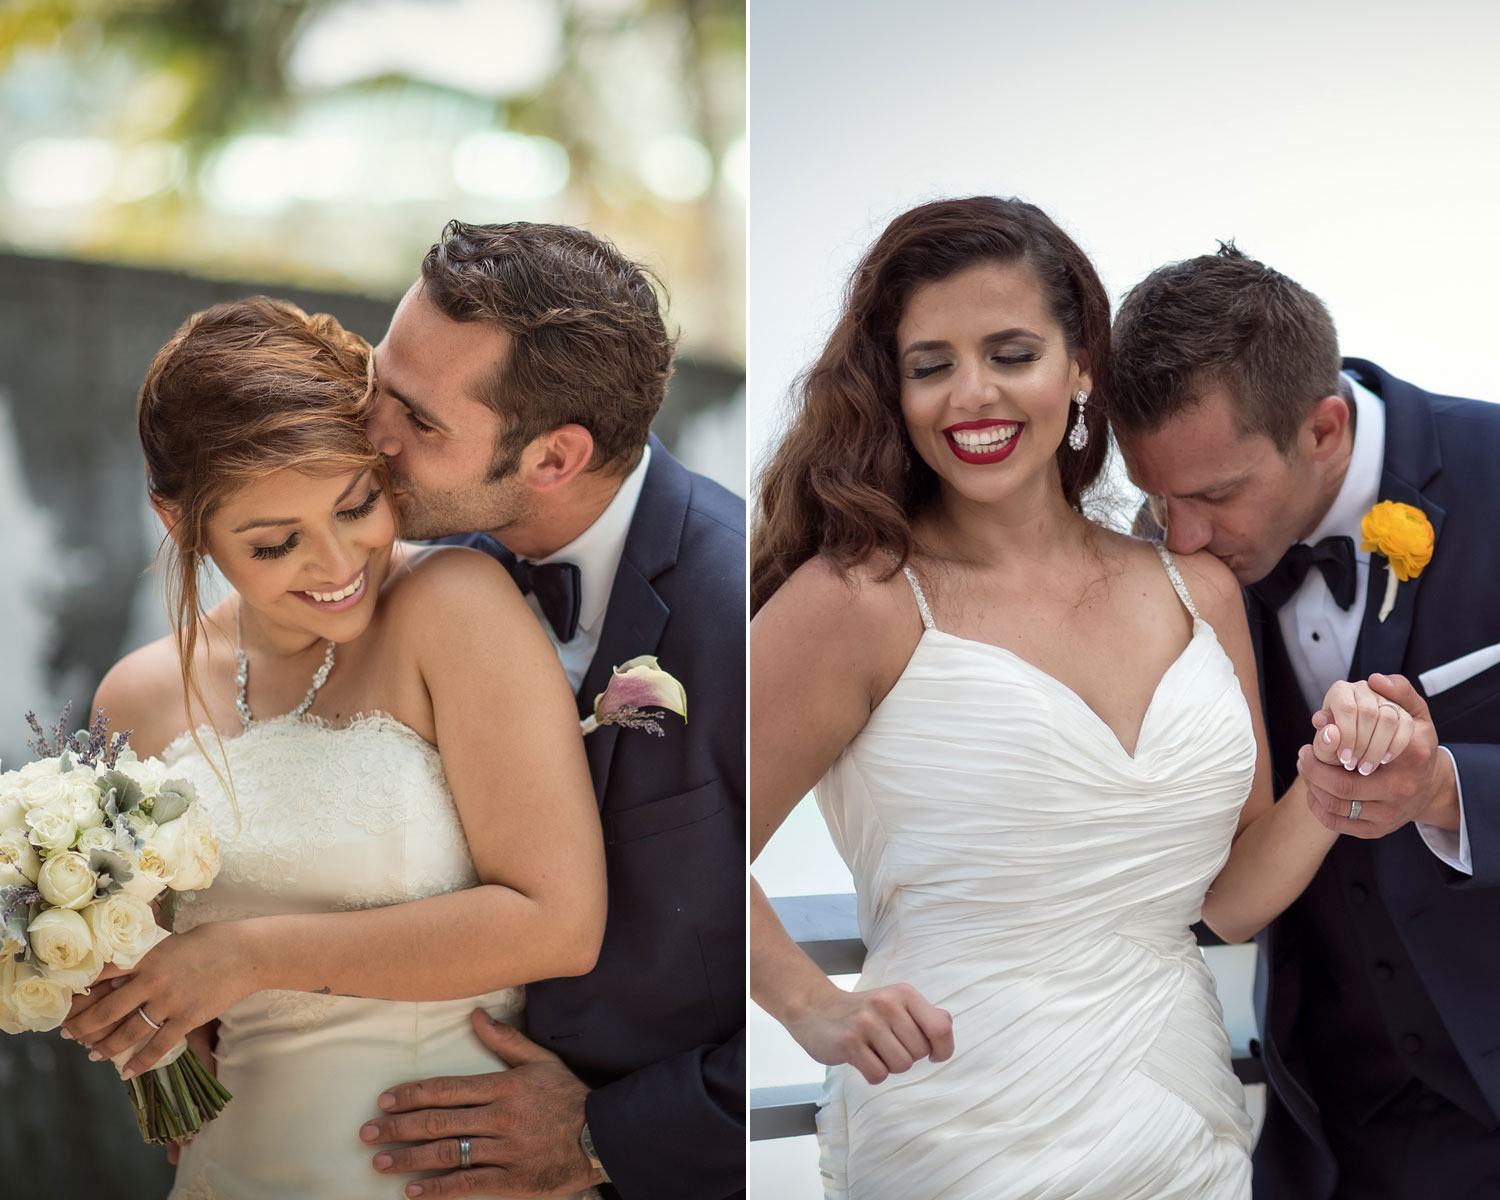 Married at First Sight's Tom and Lillian, Sonia and Nick, and Derek all discuss what they've learned about marriage following the season 4 finale. (Photos / Gio Morales for FYI)